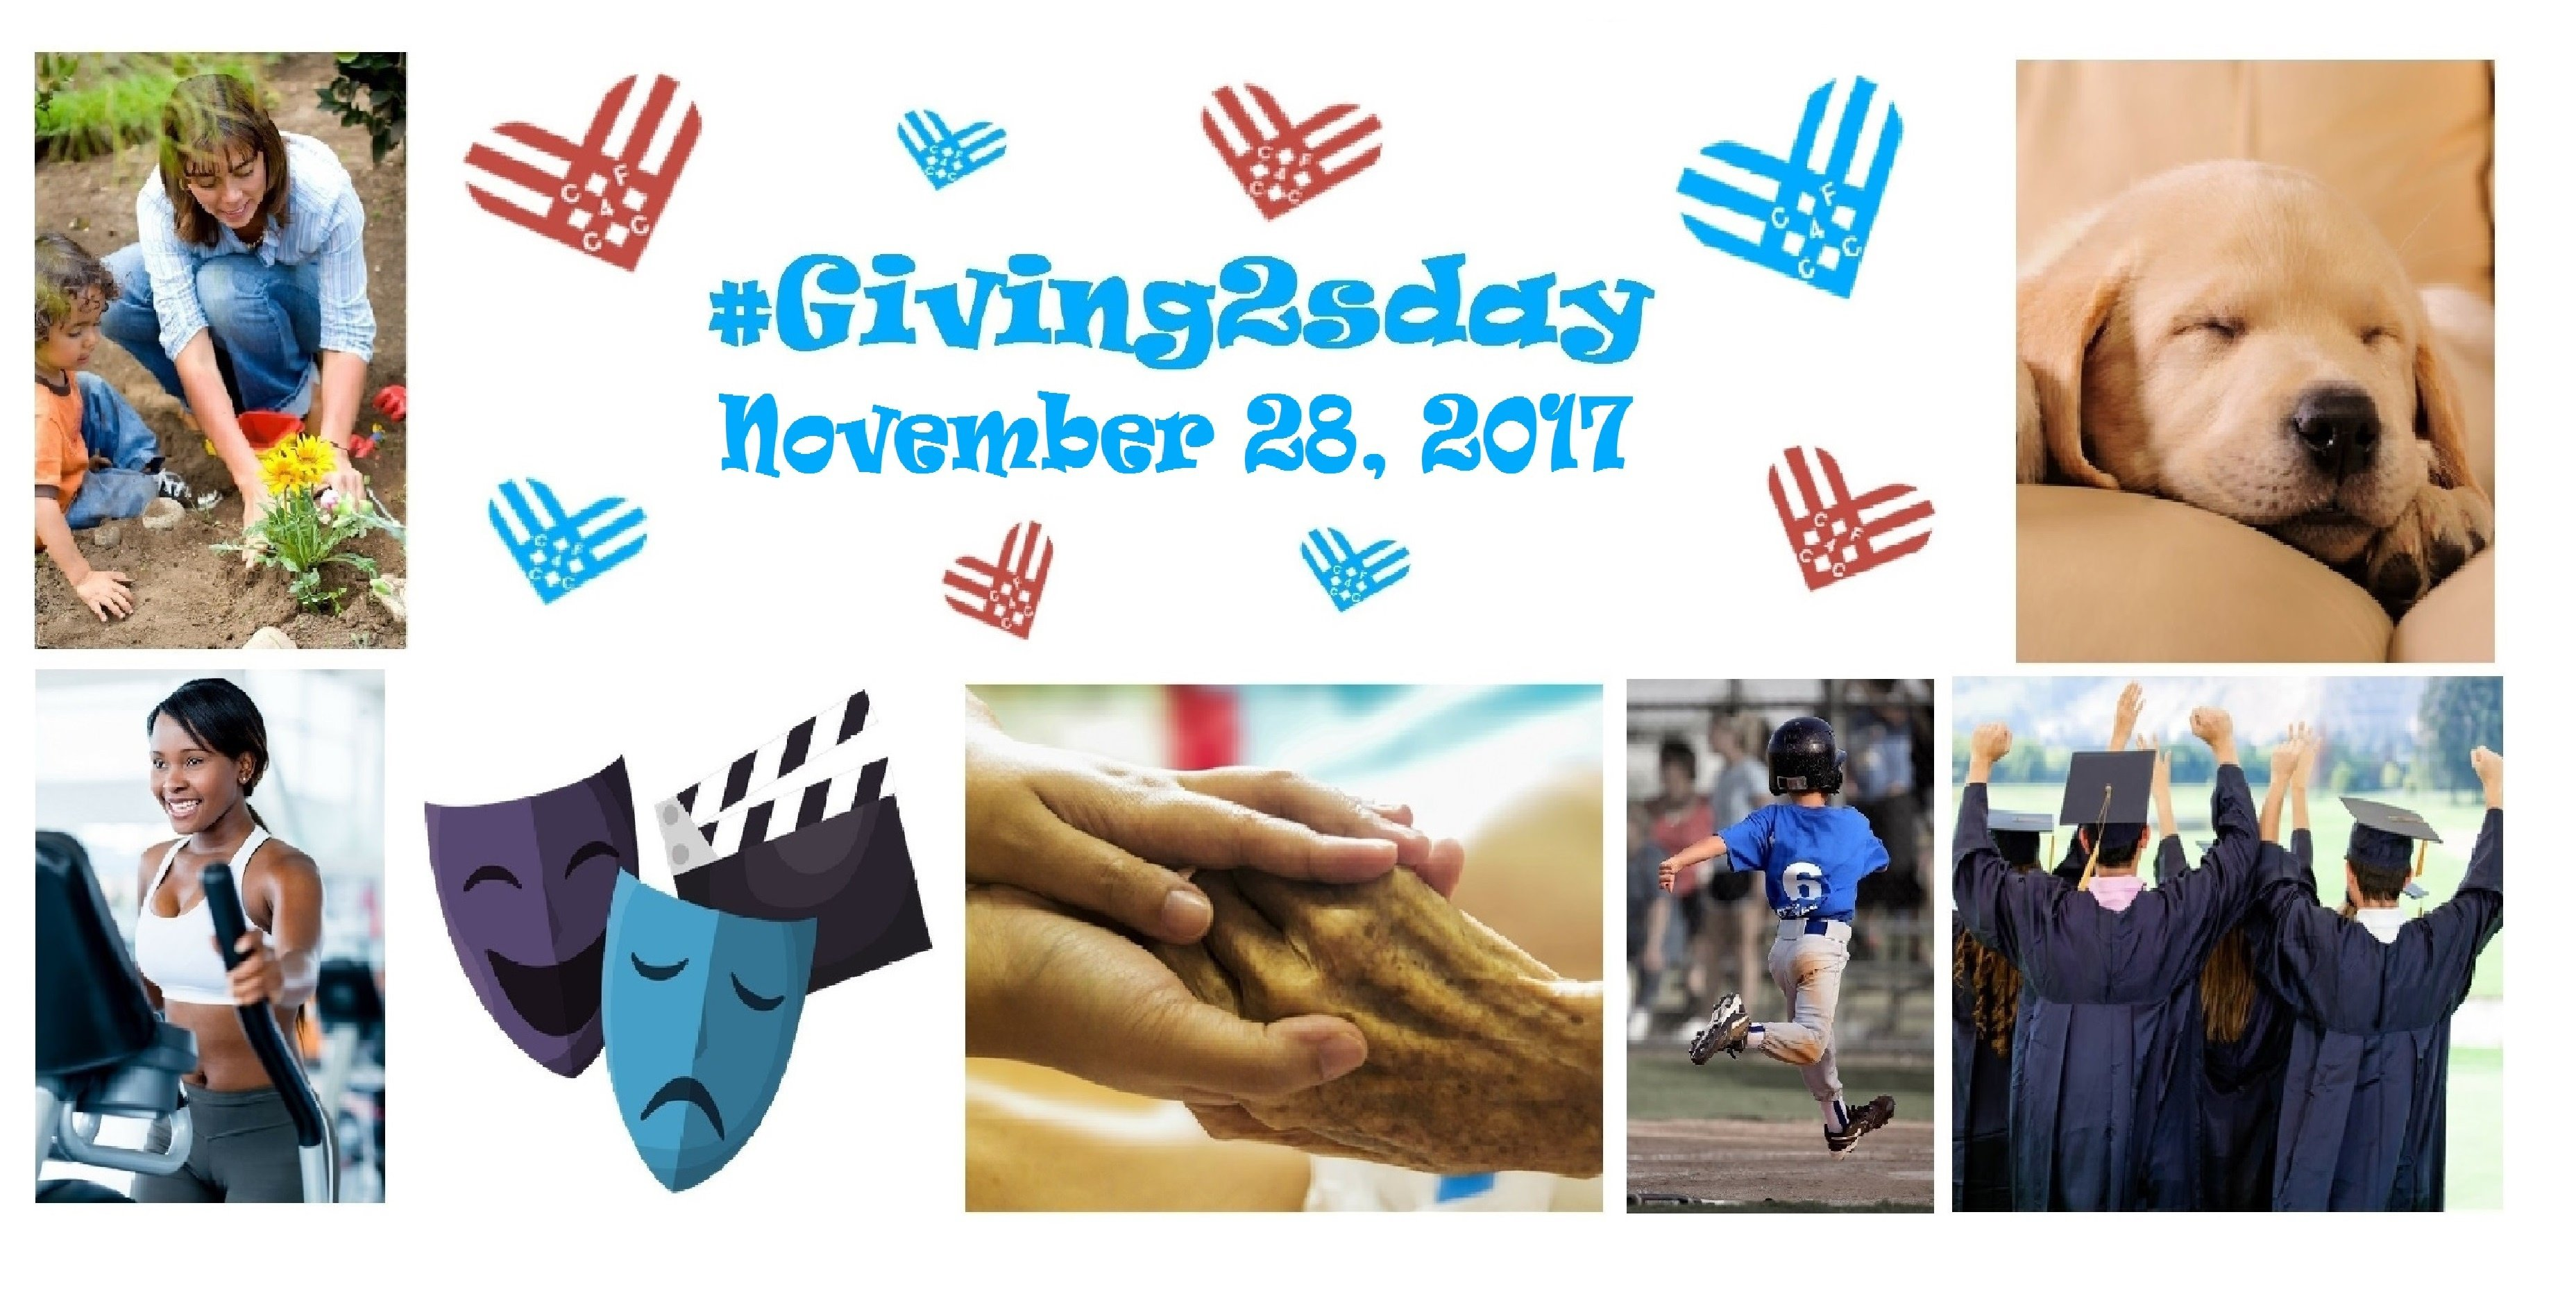 #Giving2sday website header.jpg